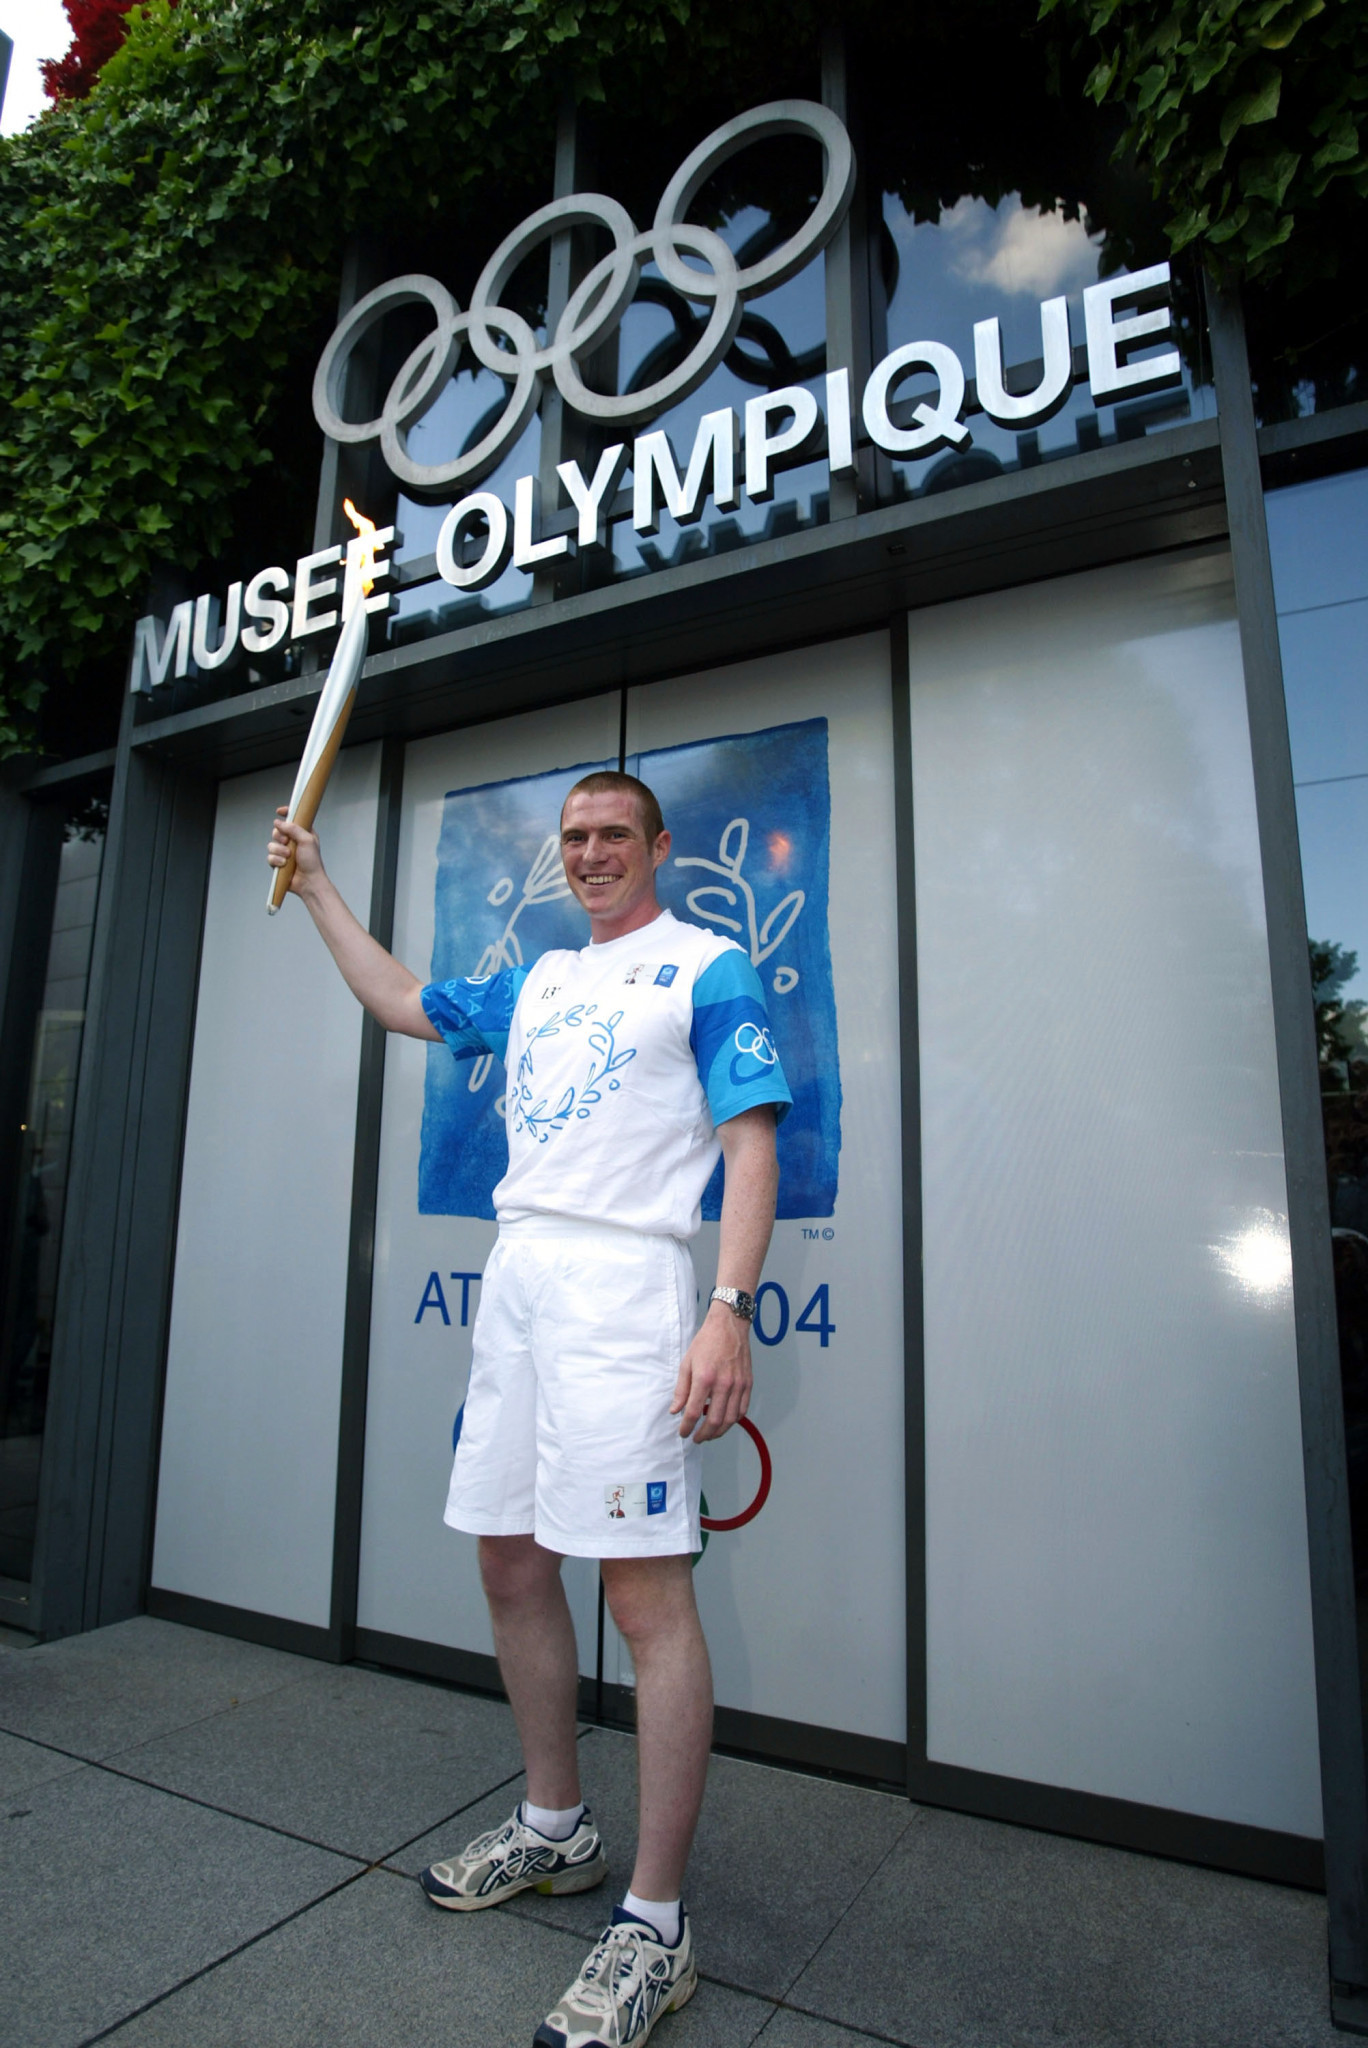 The Athens 2004 Torch Relay visited the Olympic Museum in Lausanne ©Getty Images